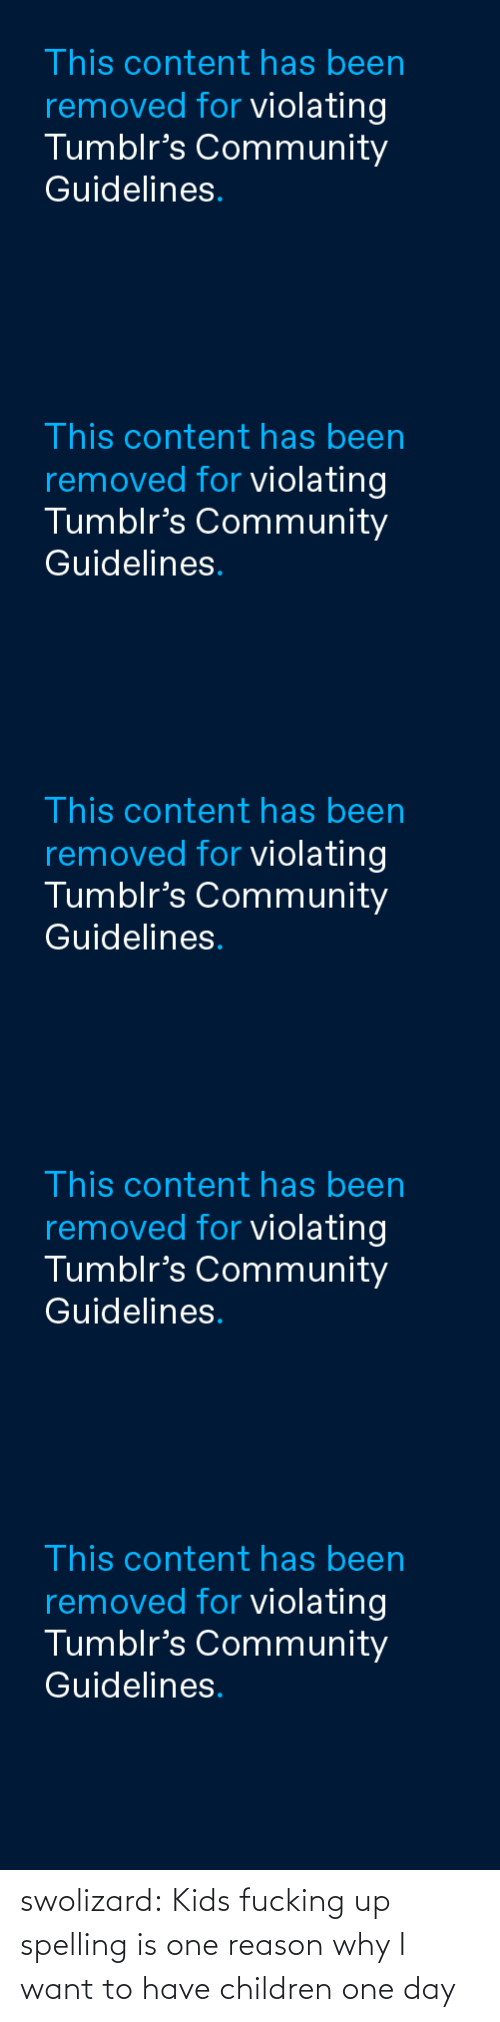 Kids Fucking: This content has been  removed for violating  Tumblr's Community  Guidelines.   This content has been  removed for violating  Tumblr's Community  Guidelines.   This content has been  removed for violating  Tumblr's Community  Guidelines.   This content has been  removed for violating  Tumblr's Community  Guidelines.   This content has been  removed for violating  Tumblr's Community  Guidelines. swolizard:  Kids fucking up spelling is one reason why I want to have children one day